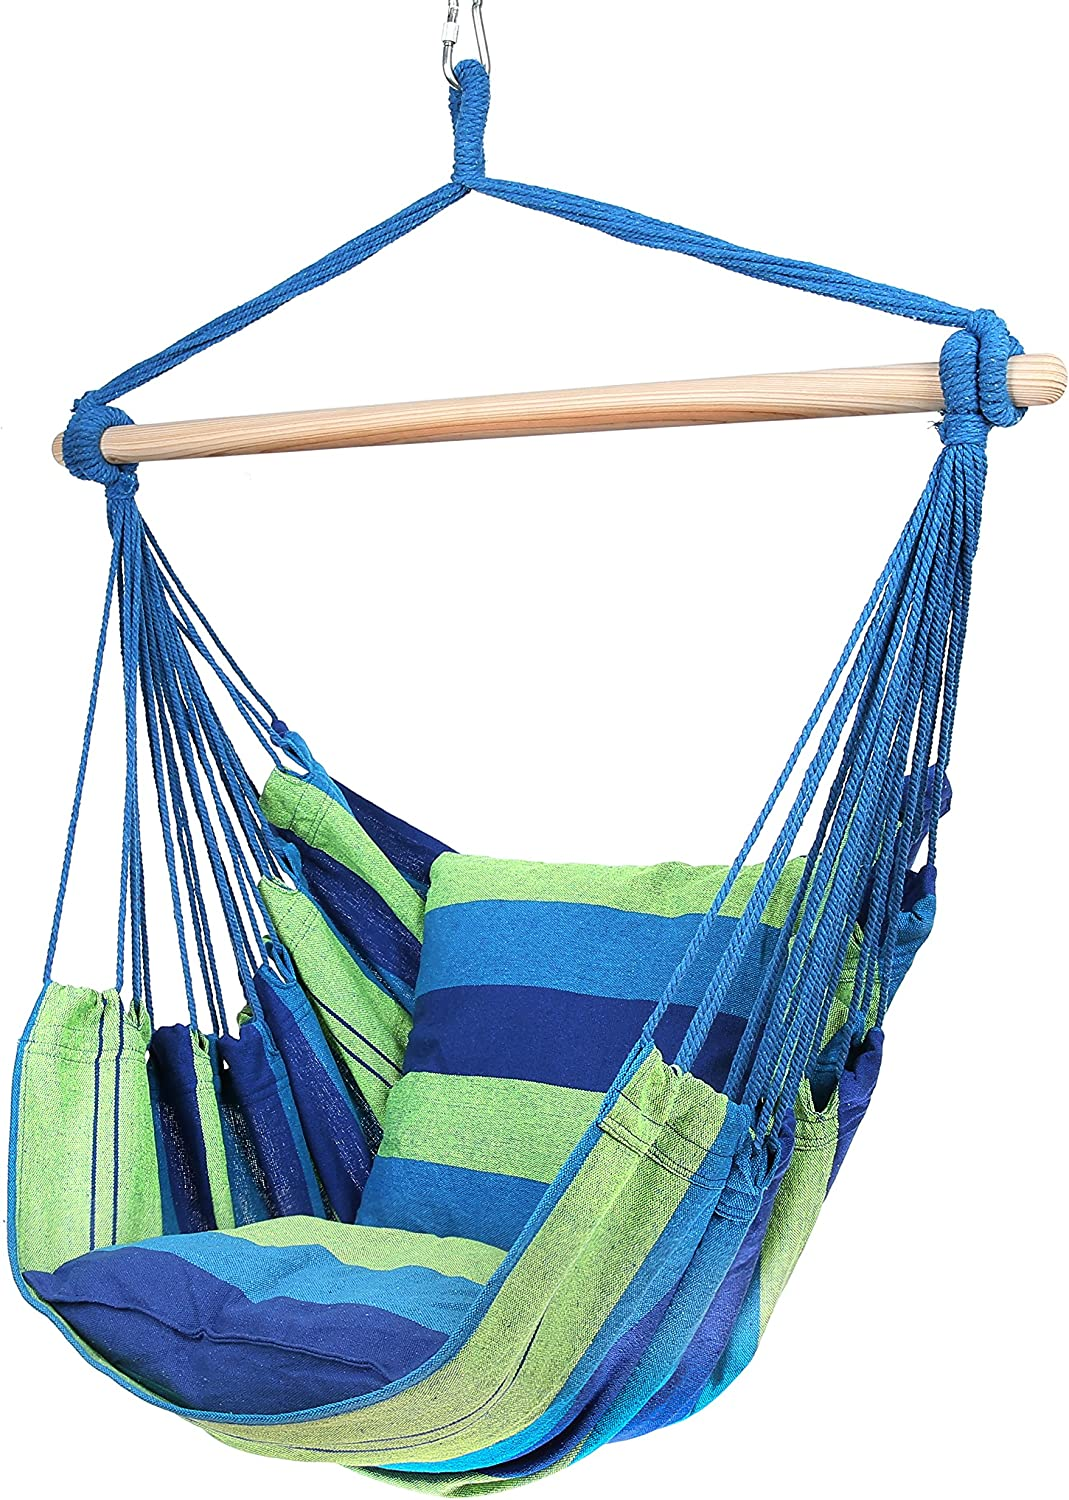 Amazon Com Blissun Hanging Hammock Chair Hanging Swing Chair With Two Cushions 34 Inch Wide Seat Blue Green Stripes Blue Green Stripes Garden Outdoor